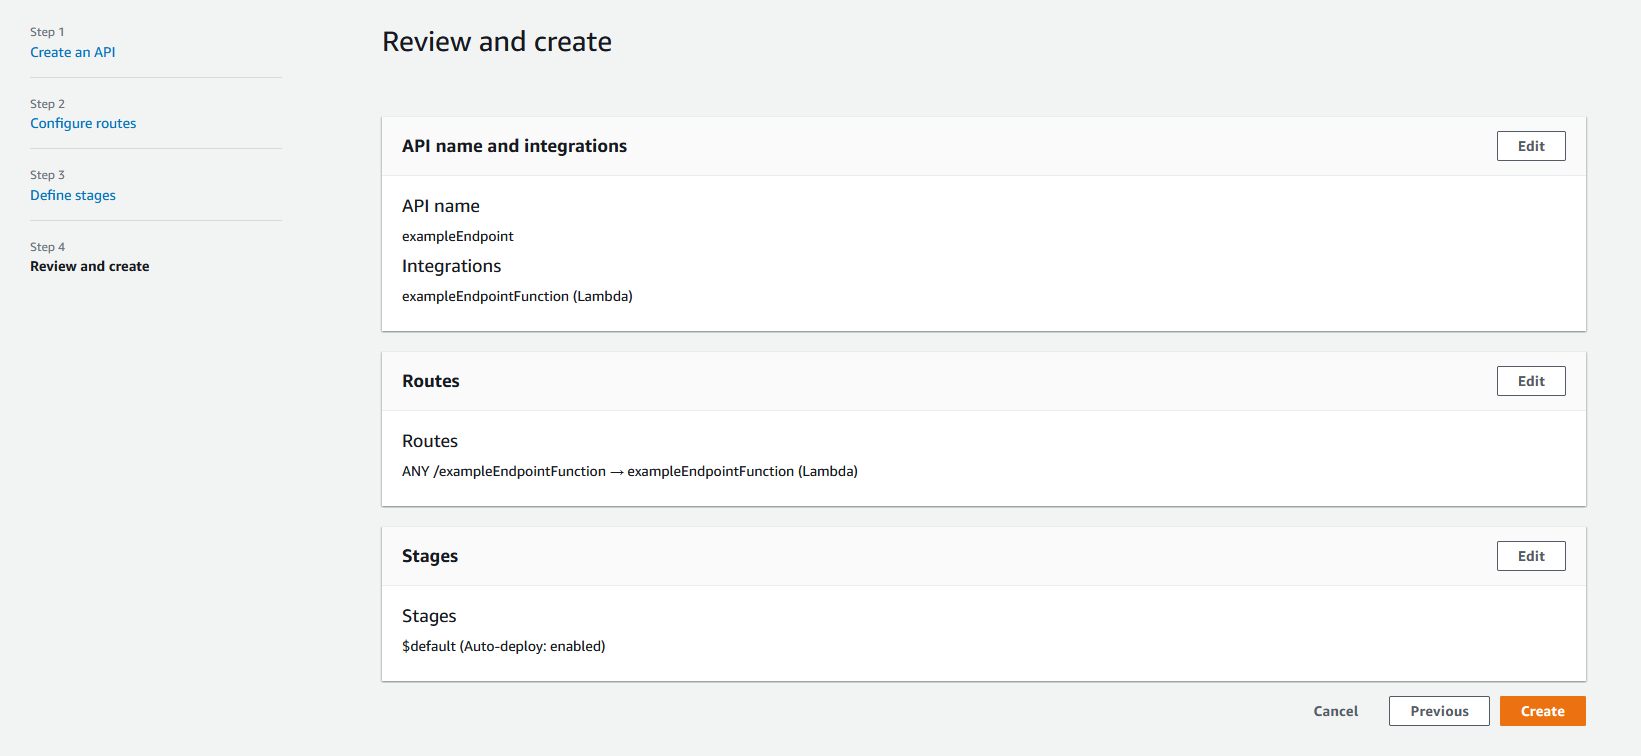 The last step for creating an API. This API has example endpoint as the name with a Lambda integration.